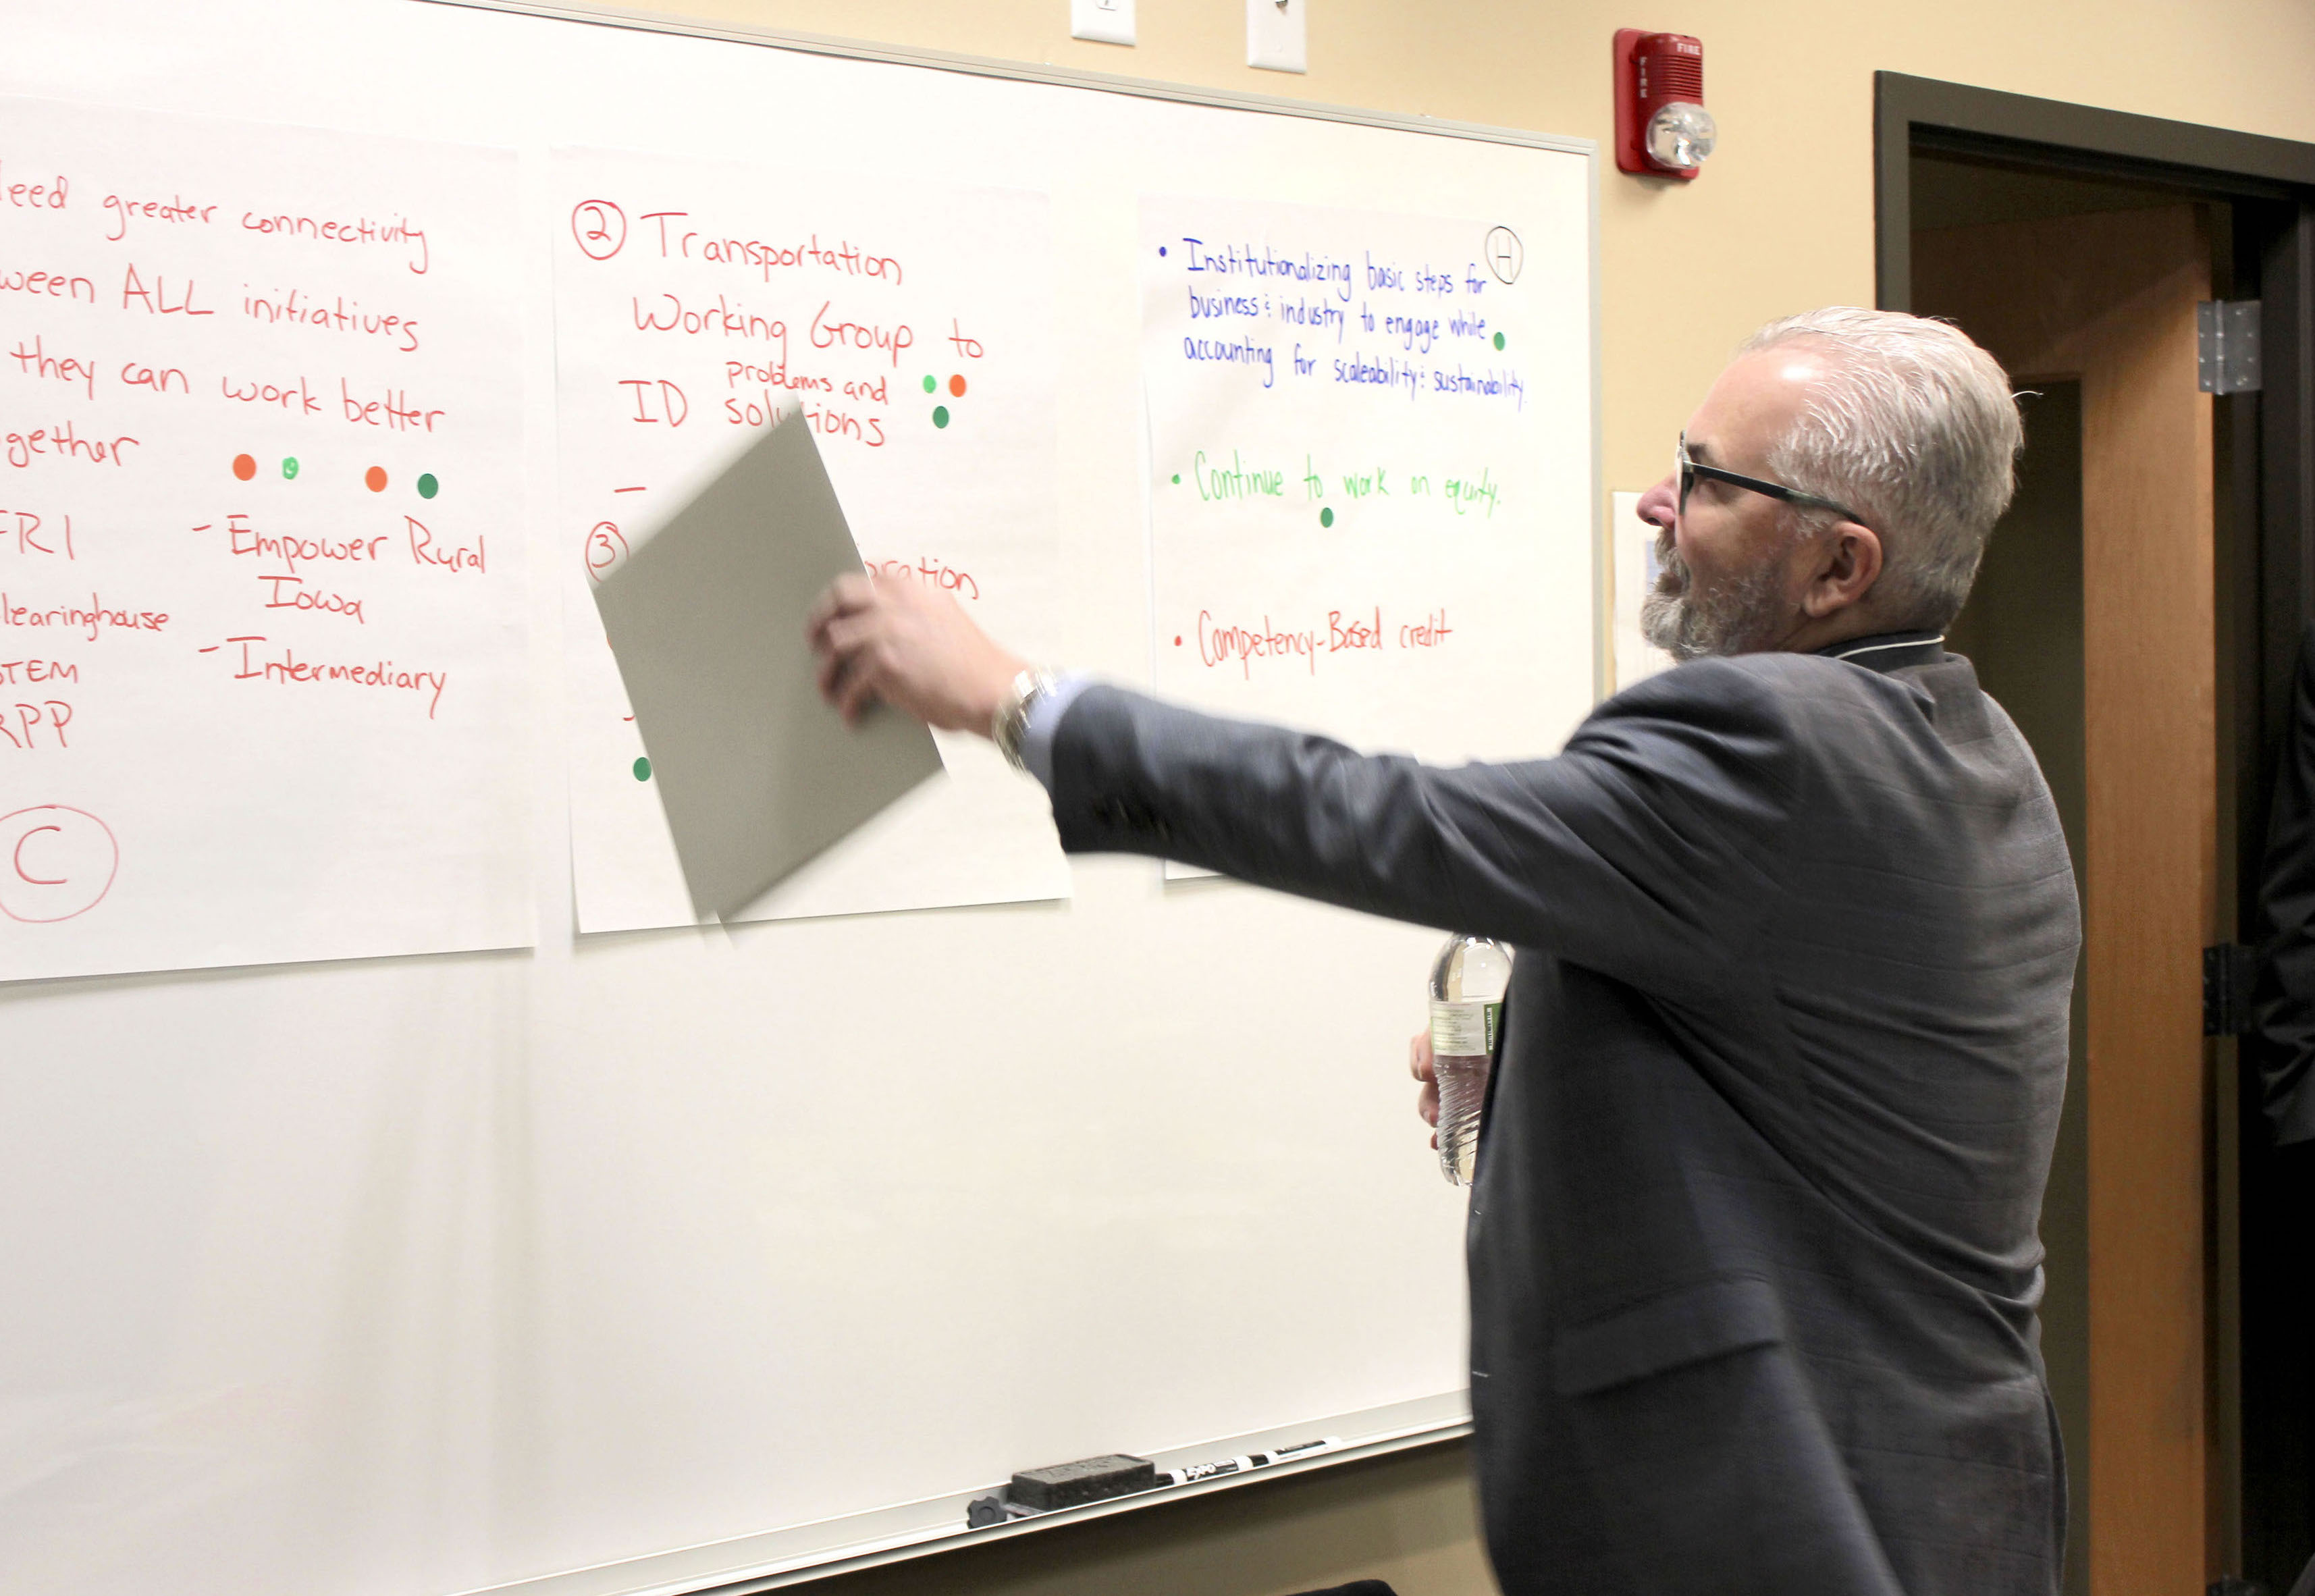 STEM Advisory Council members launched five working groups to make recommendations that will shape the future of STEM in Iowa.